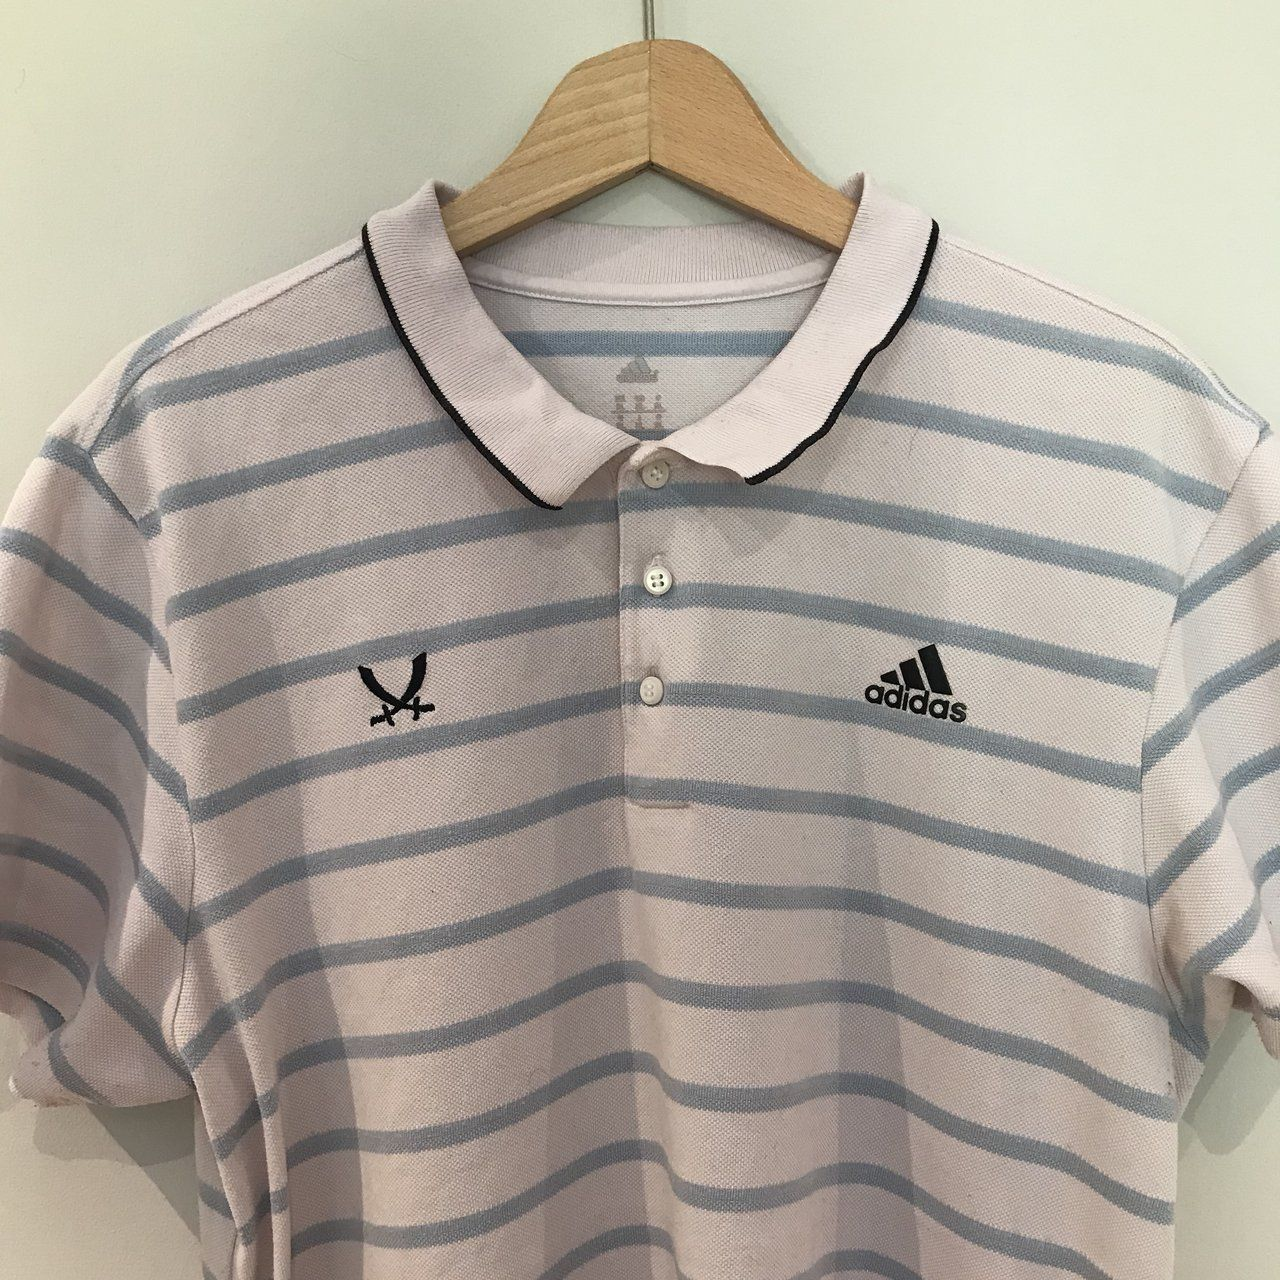 54b3bd91438 vintage pink and white striped adidas polo shirt top condition - some  slight bobbling under arm but nothing noticeable Size XL would look good  oversized ...